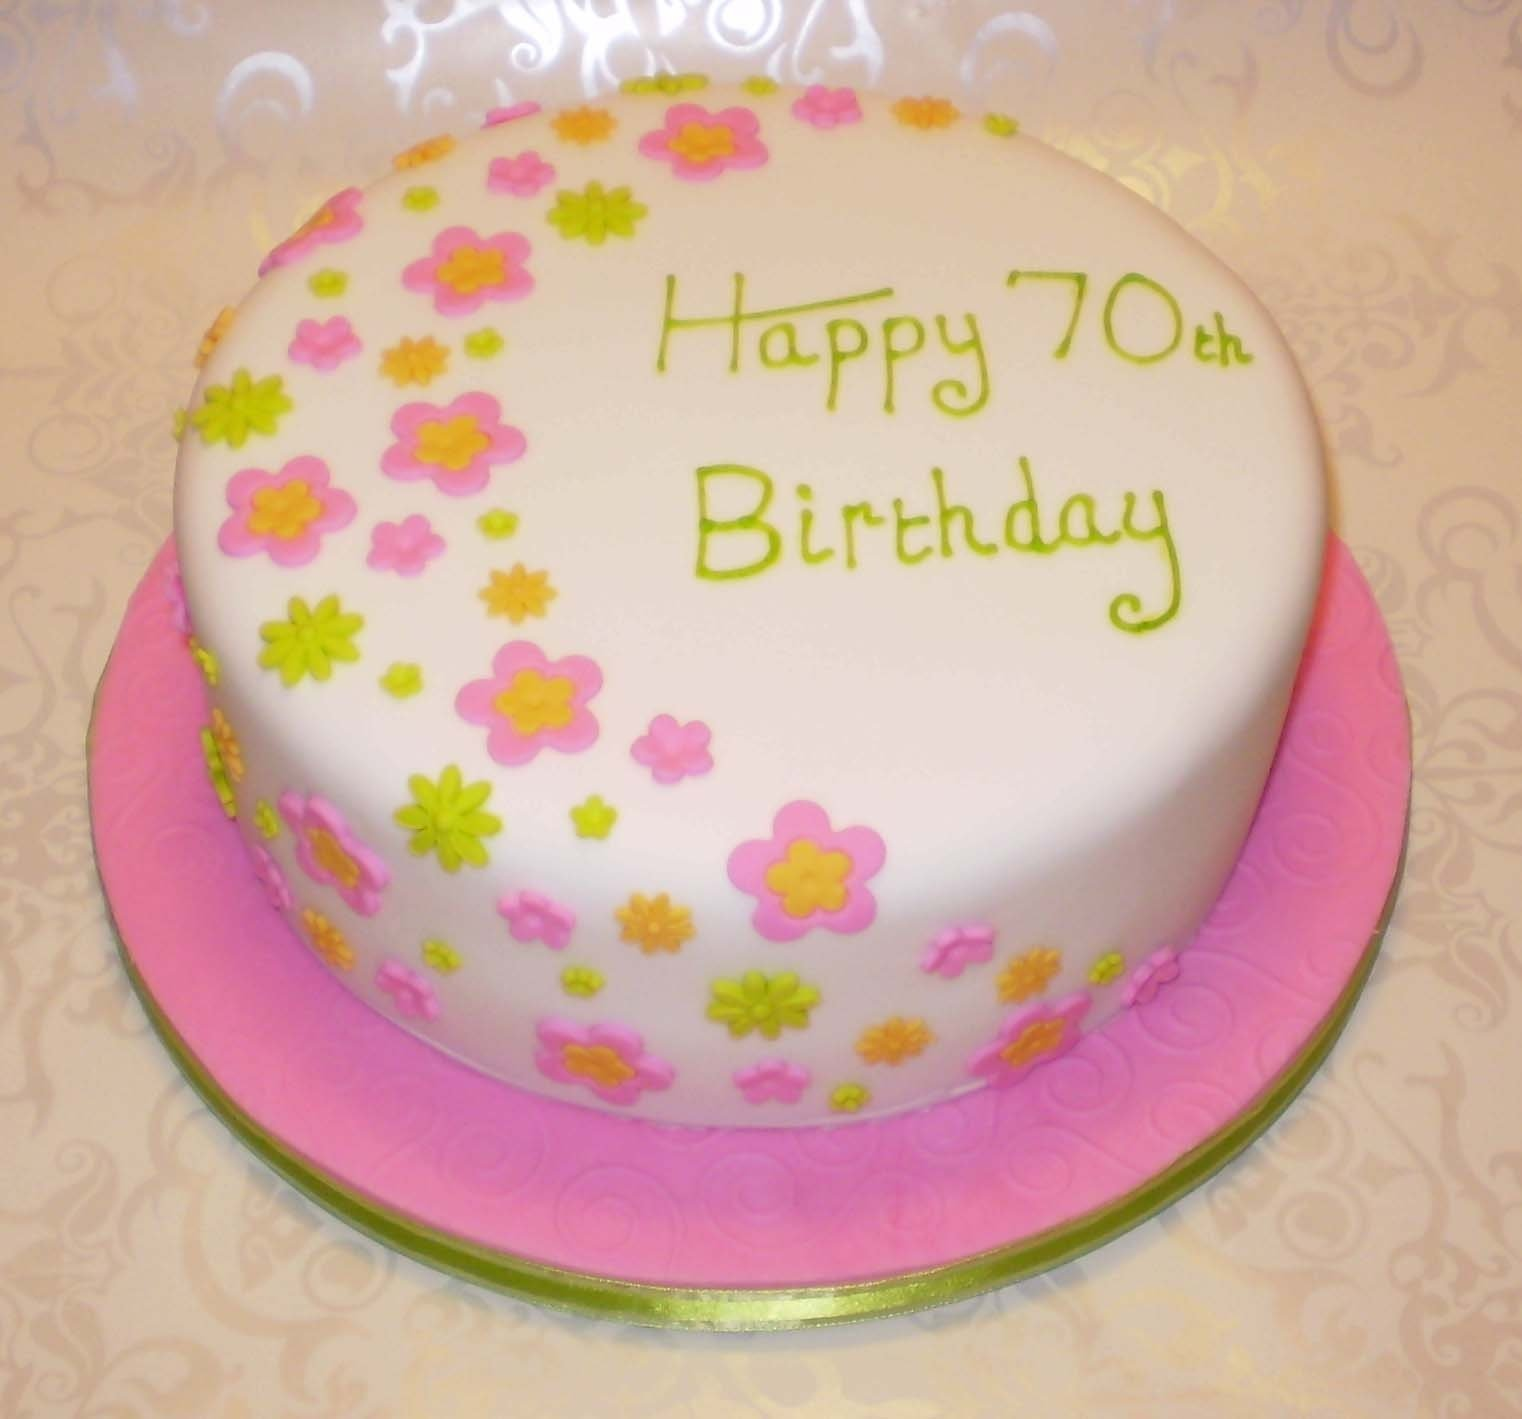 10 Best Simple Birthday Cake Decorating Ideas birthday cake flower 390 birthday cake flower birthdays cakes 1 2020